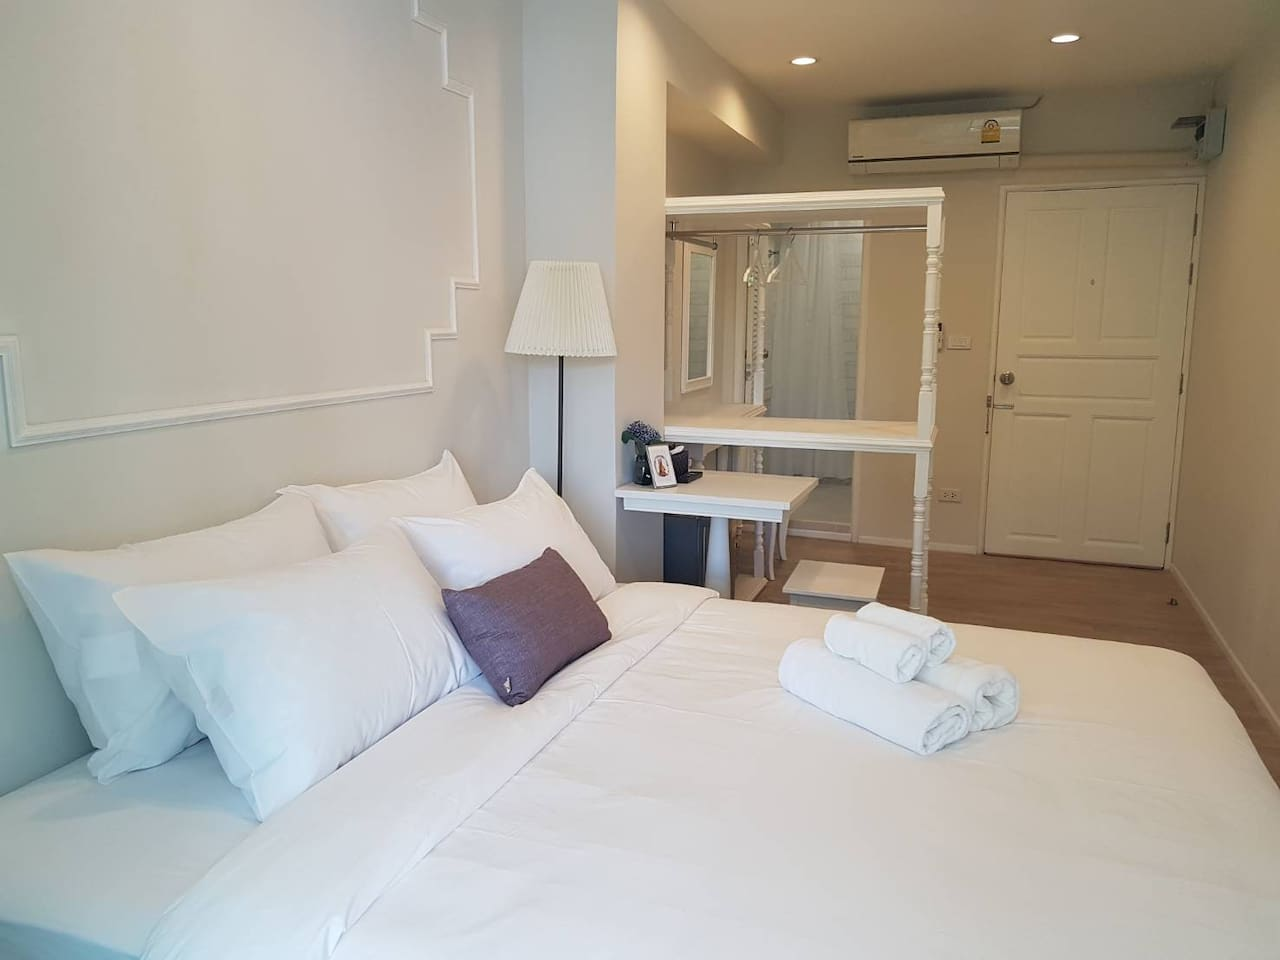 Private room - Double Bed for 1 person or couple. Fully Furnish and setup clean bed linens. Bliss Silom Bangkok